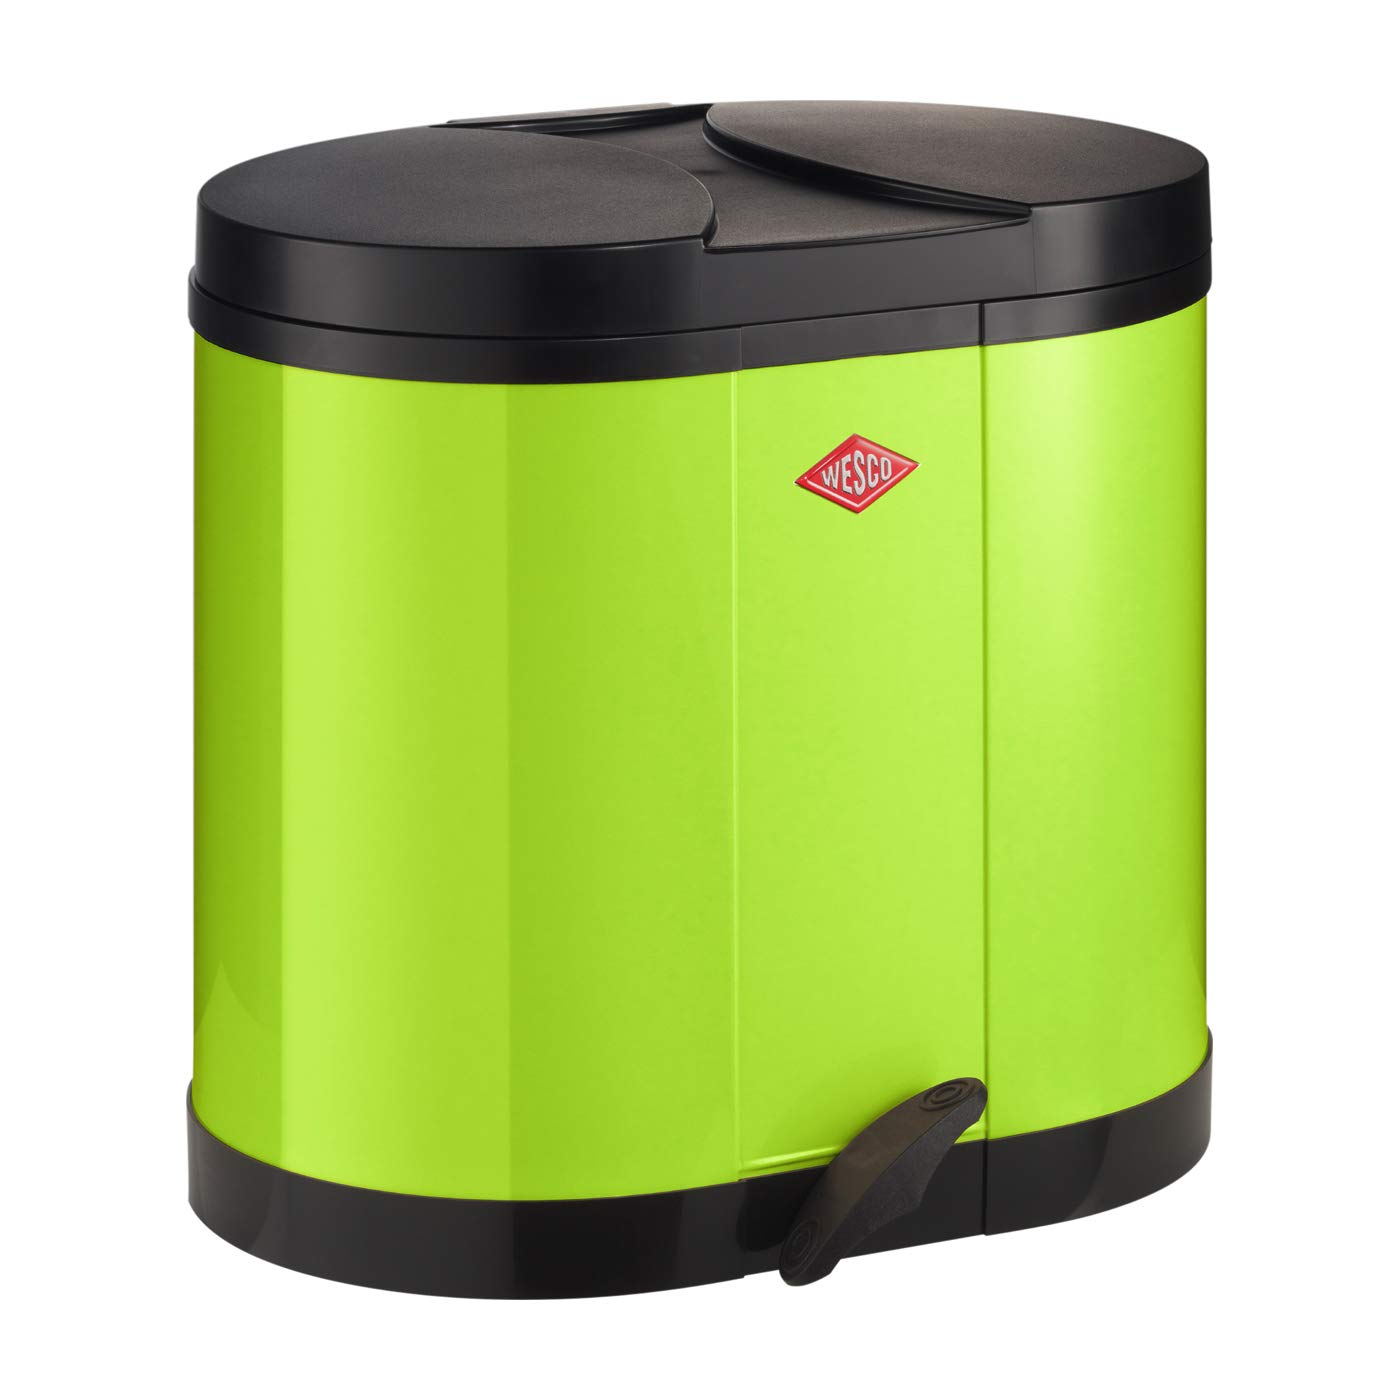 Wesco Eco Collector Overseas parallel import regular item 170 Waste Dustbin quality assurance Lime Pedal Bin Gre